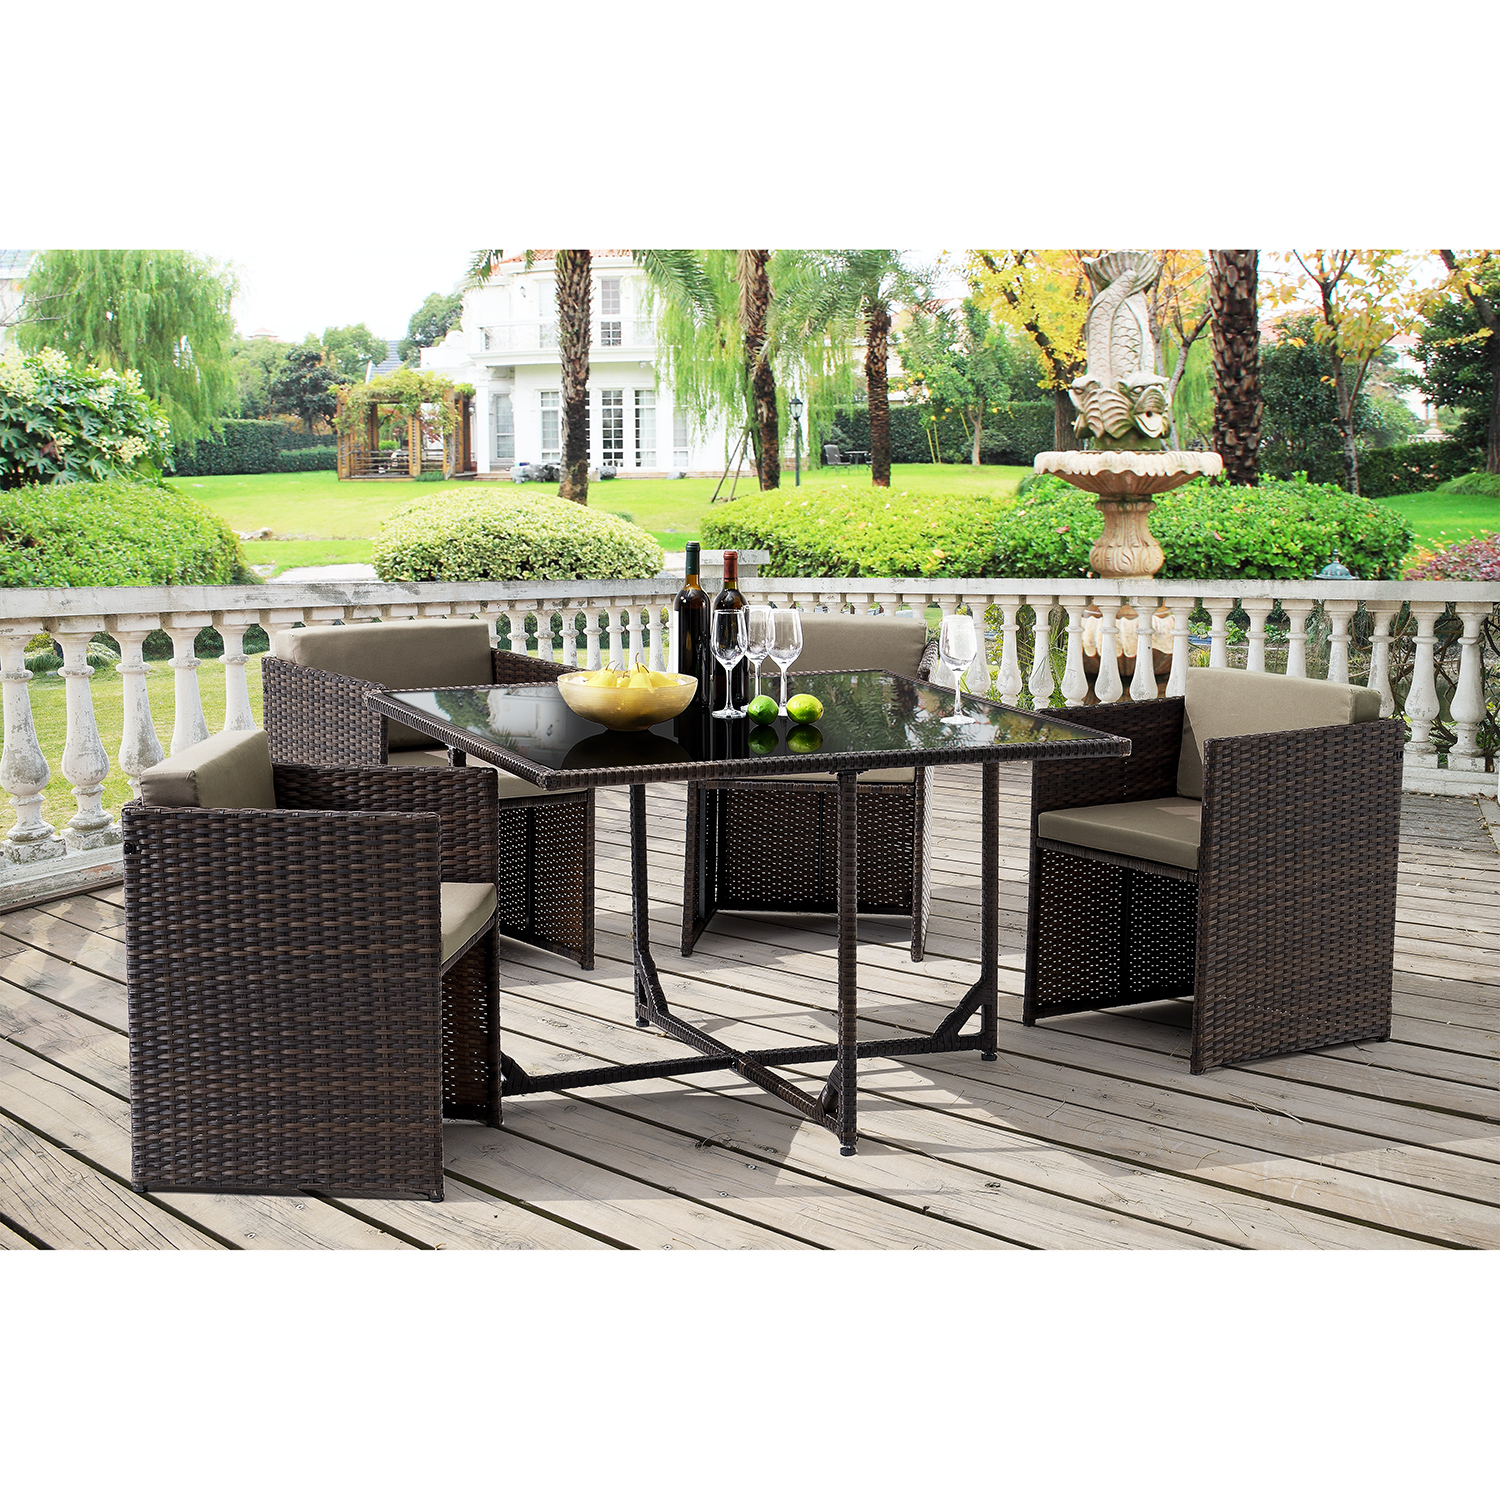 casa pro poly rotin si ges table 4 chaises salon jardin garniture meuble ebay. Black Bedroom Furniture Sets. Home Design Ideas